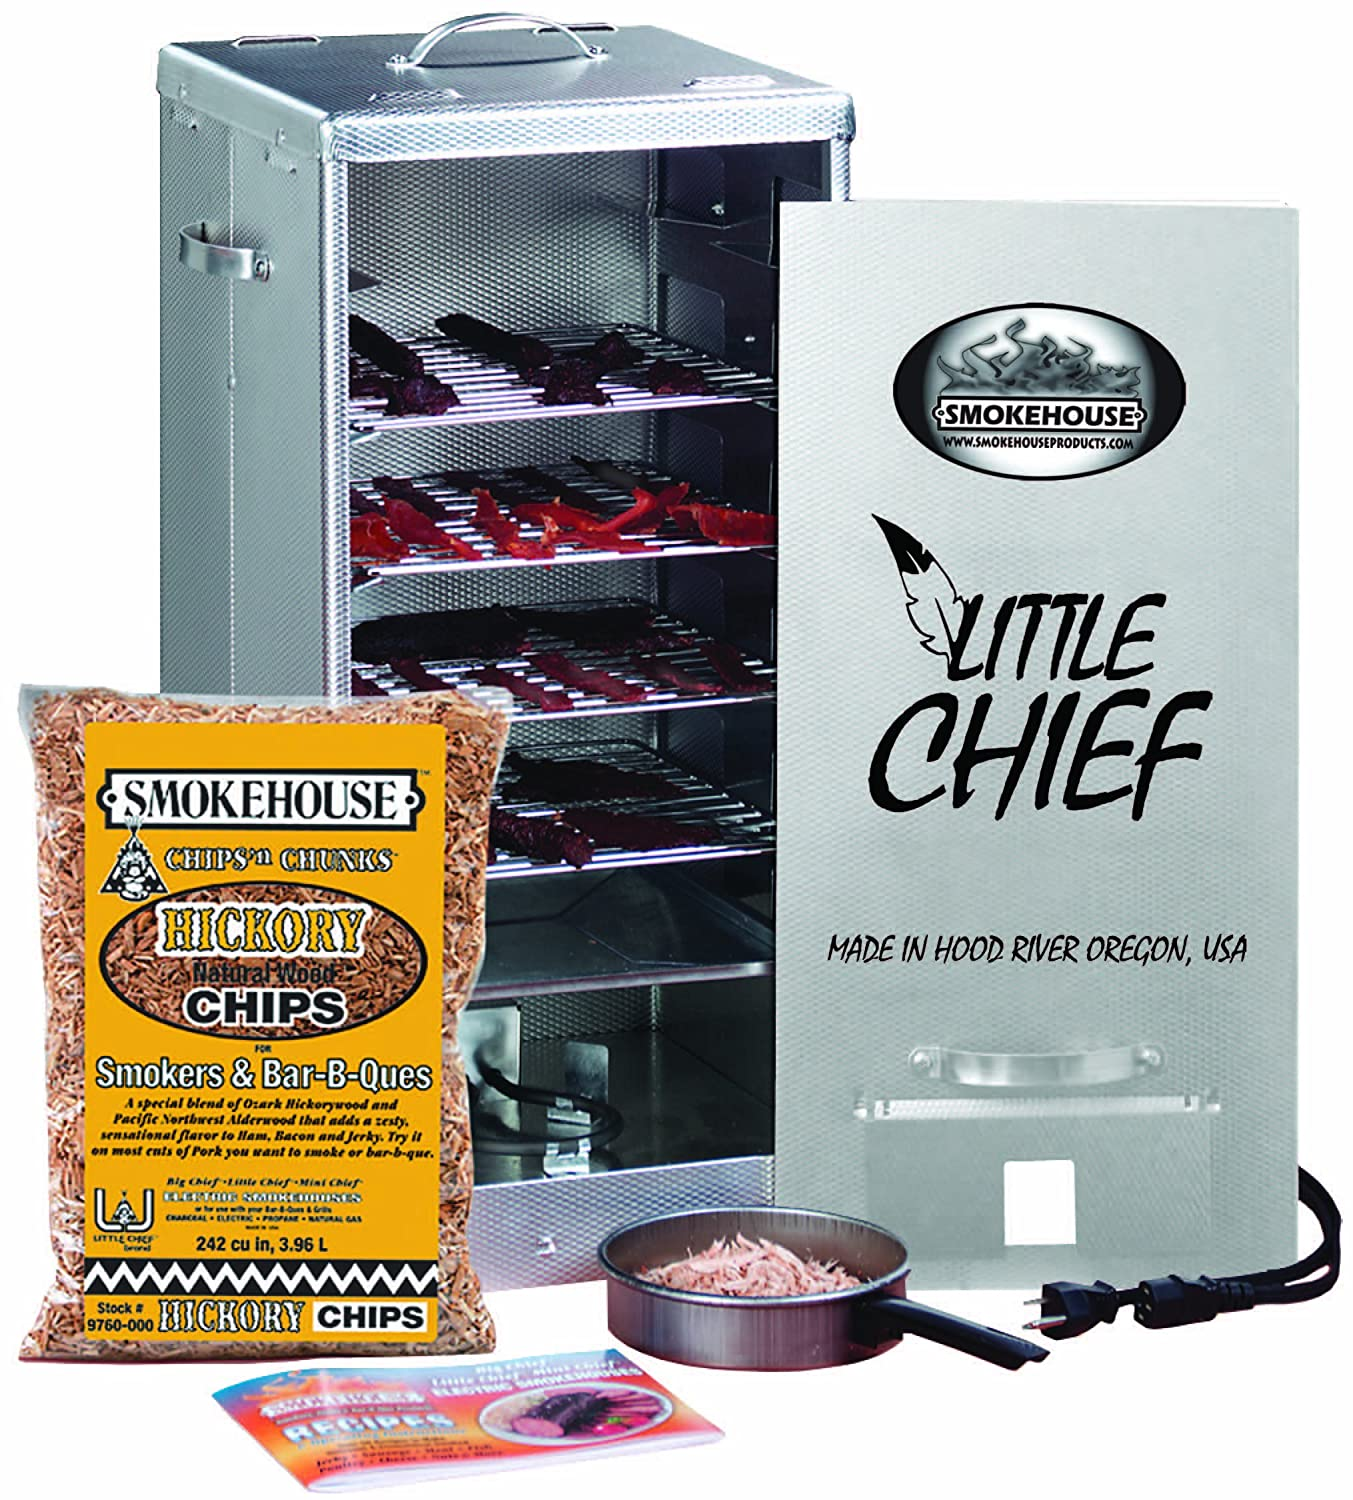 Smokehouse-Little-Chief